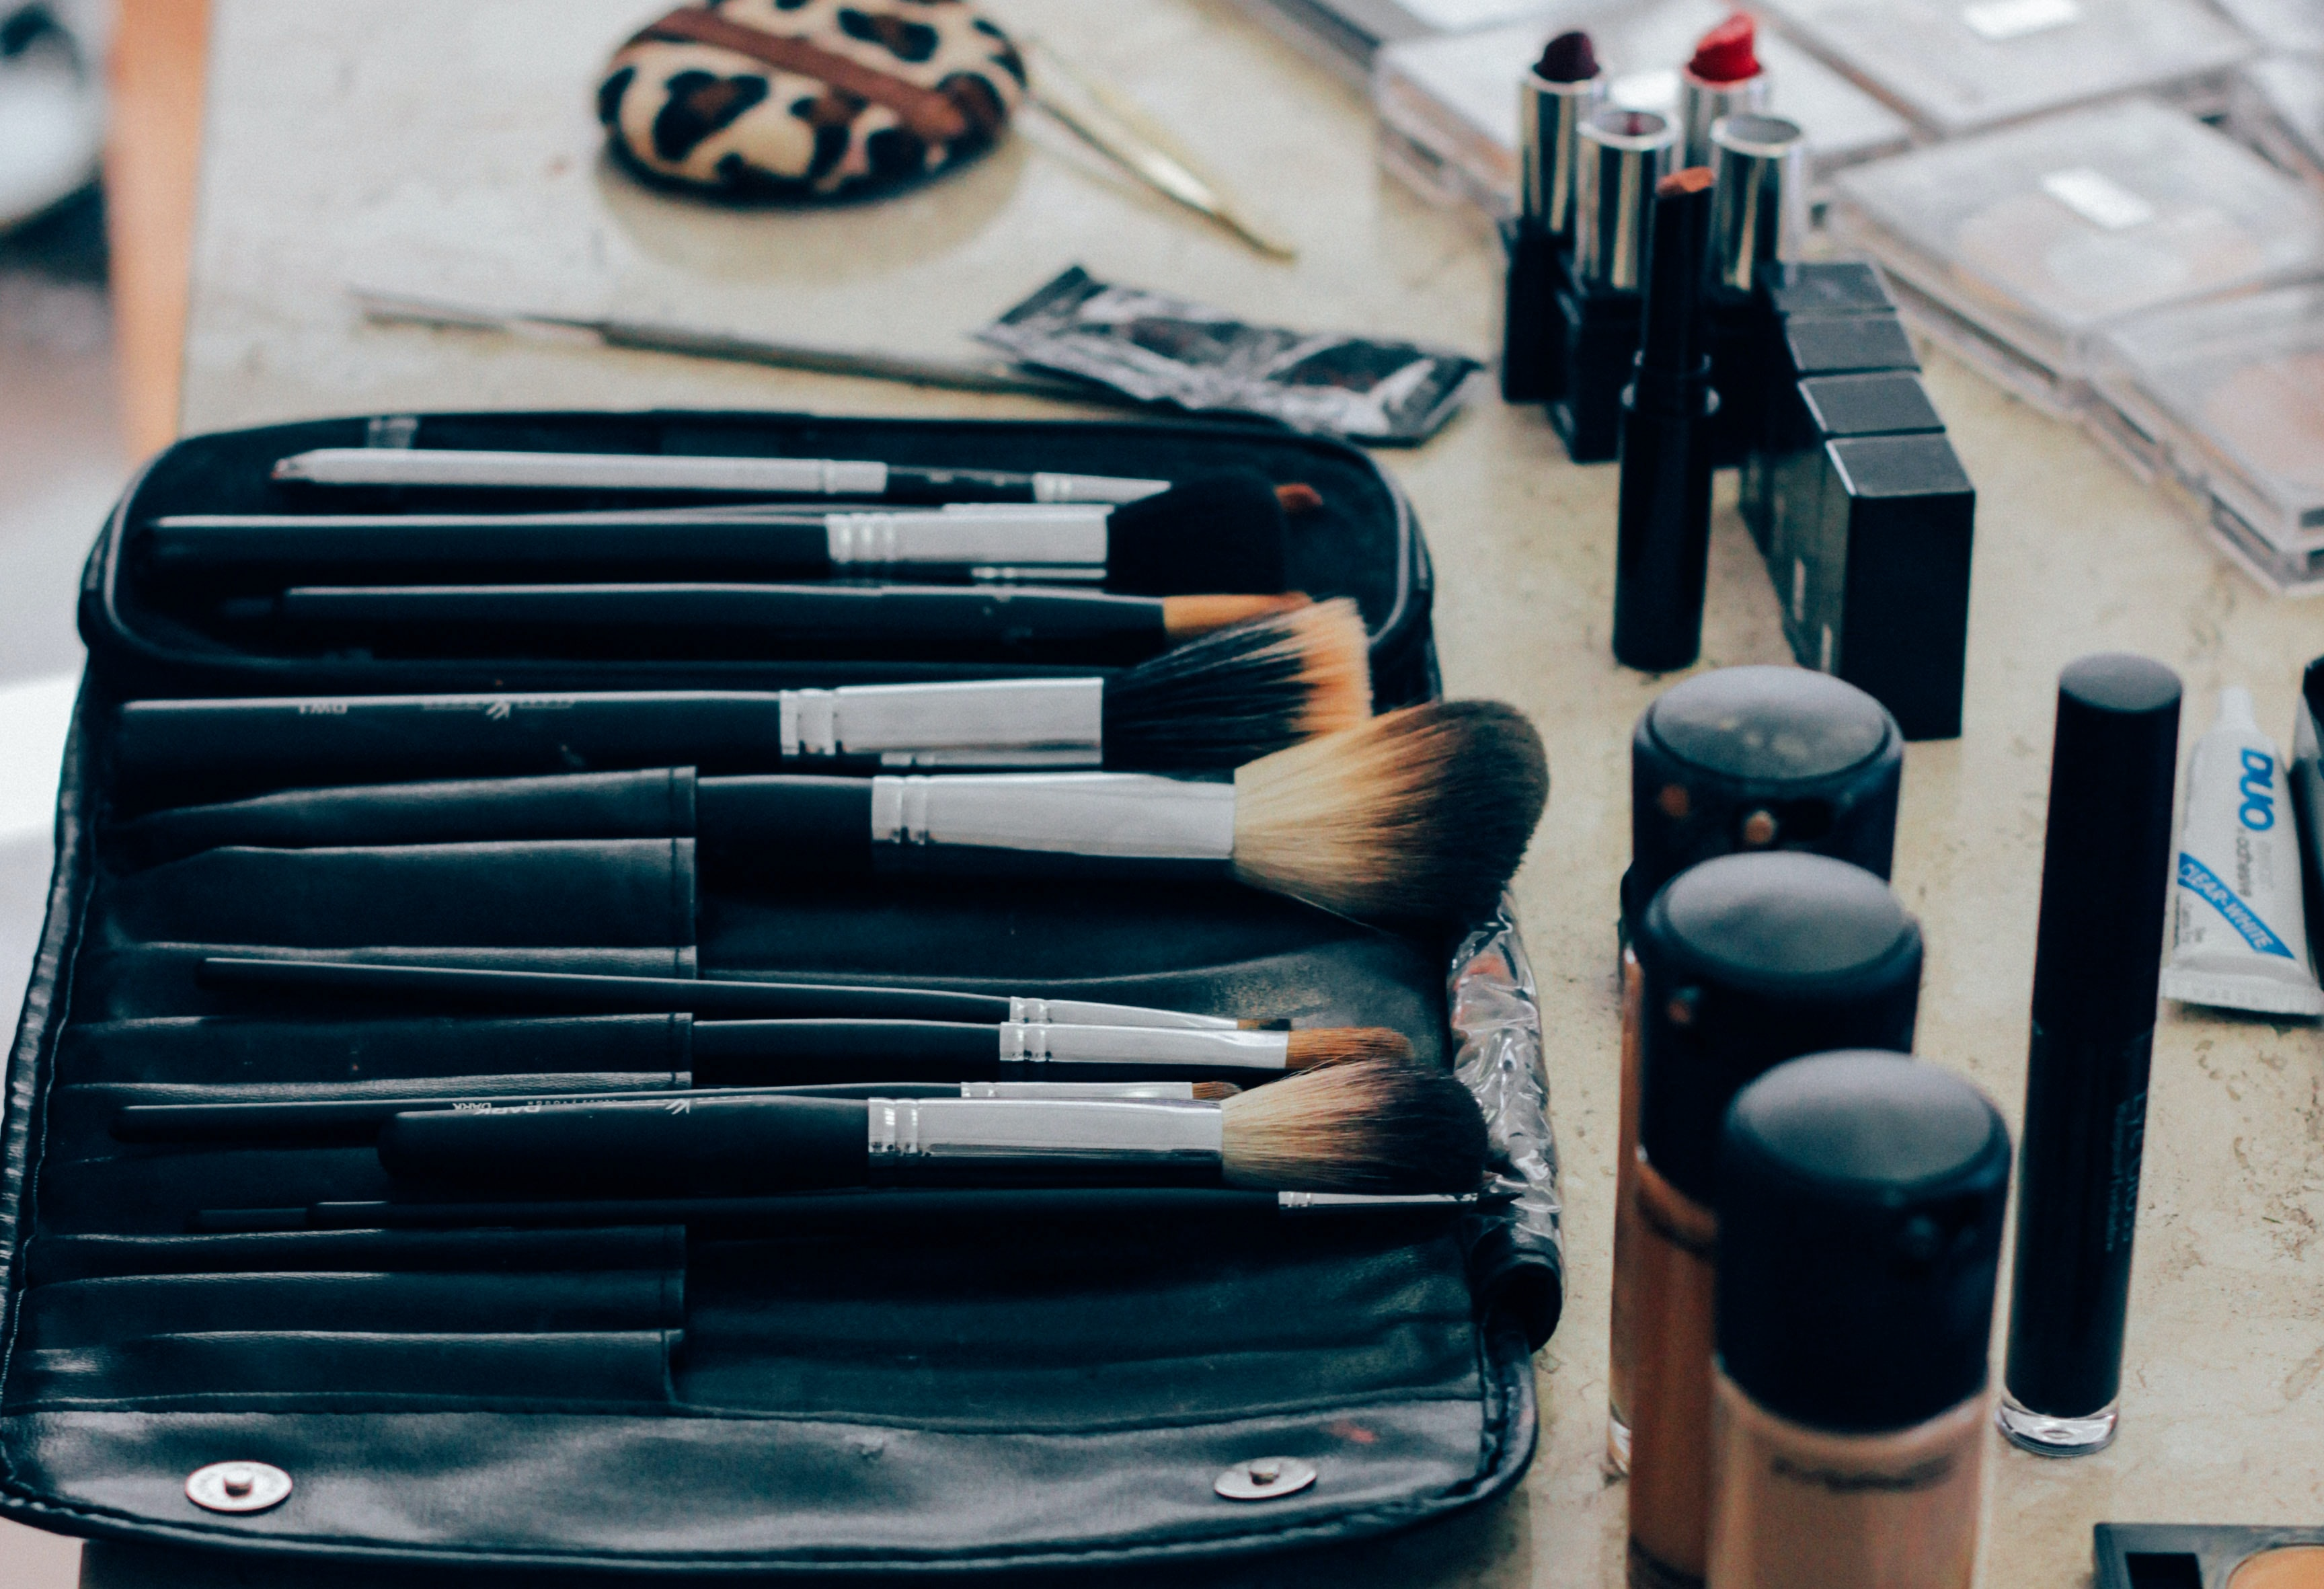 Make-up brushes and various cosmetics on a table